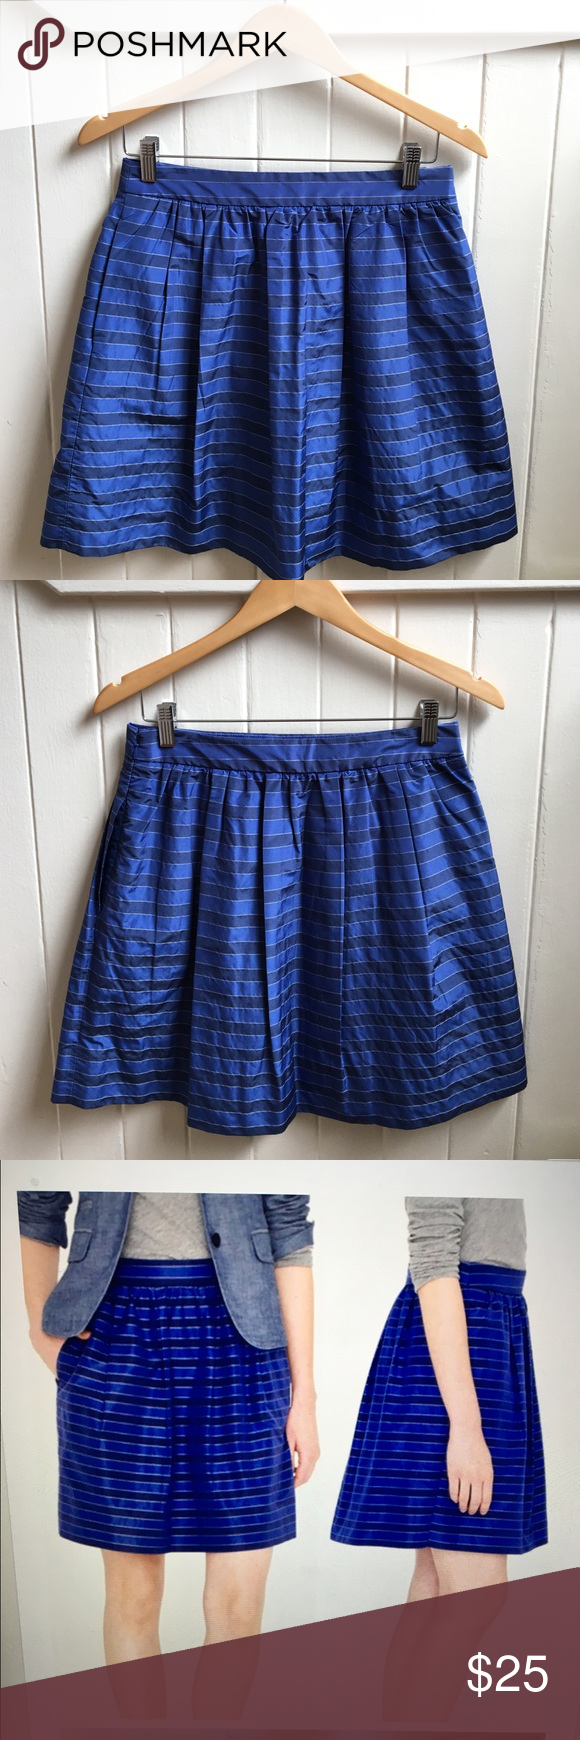 "J. Crew Silk Blend Striped Skirt EUC Beautiful dainty silk blend striped skirt. Pleated and fully lined. Hidden pockets in the front. Side zipper. 19"" from waist to hem.  Excellent condition. J. Crew Skirts"